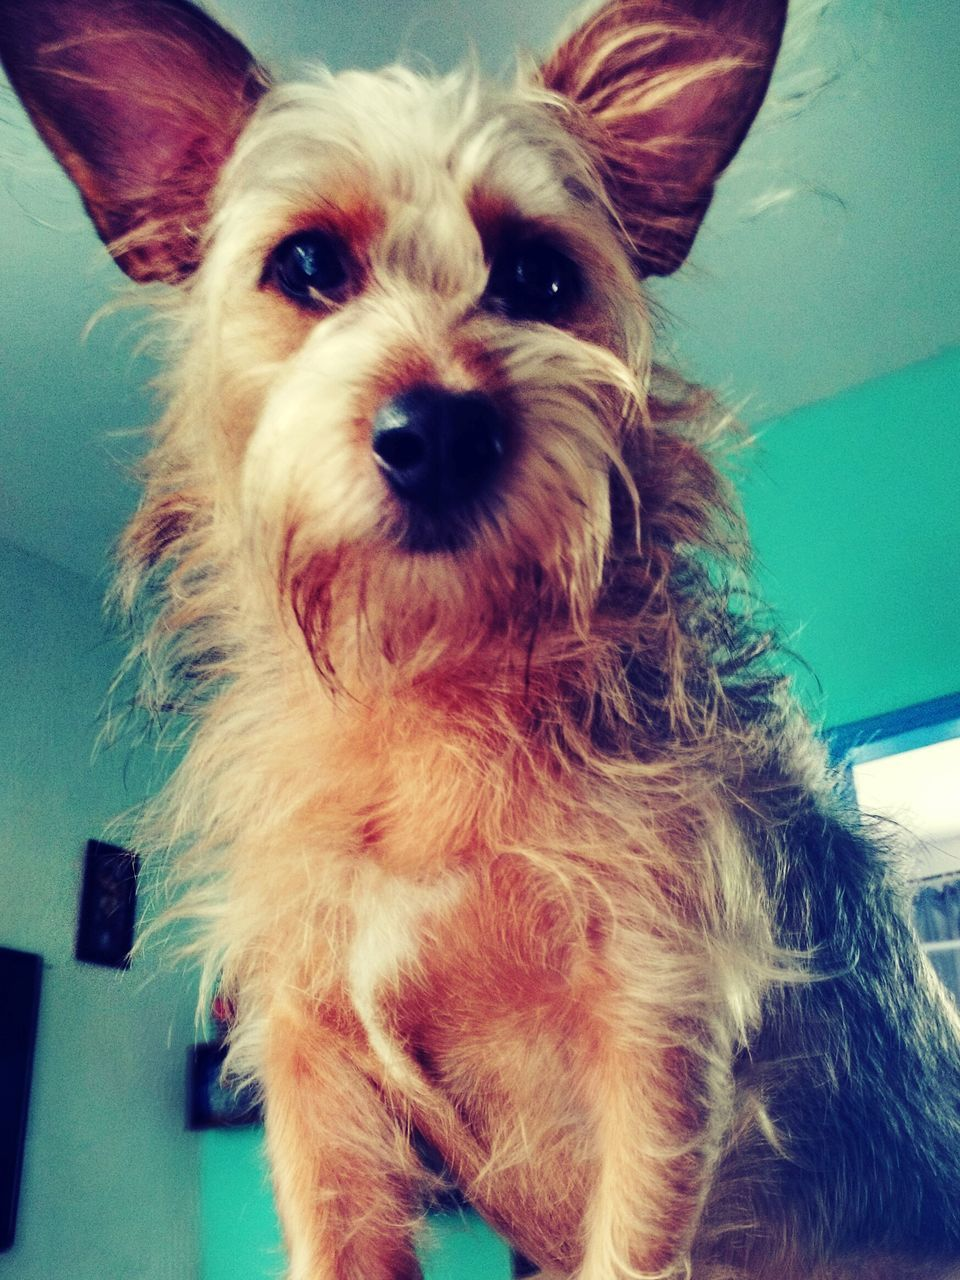 pets, domestic animals, dog, one animal, mammal, animal themes, indoors, portrait, looking at camera, close-up, home interior, no people, day